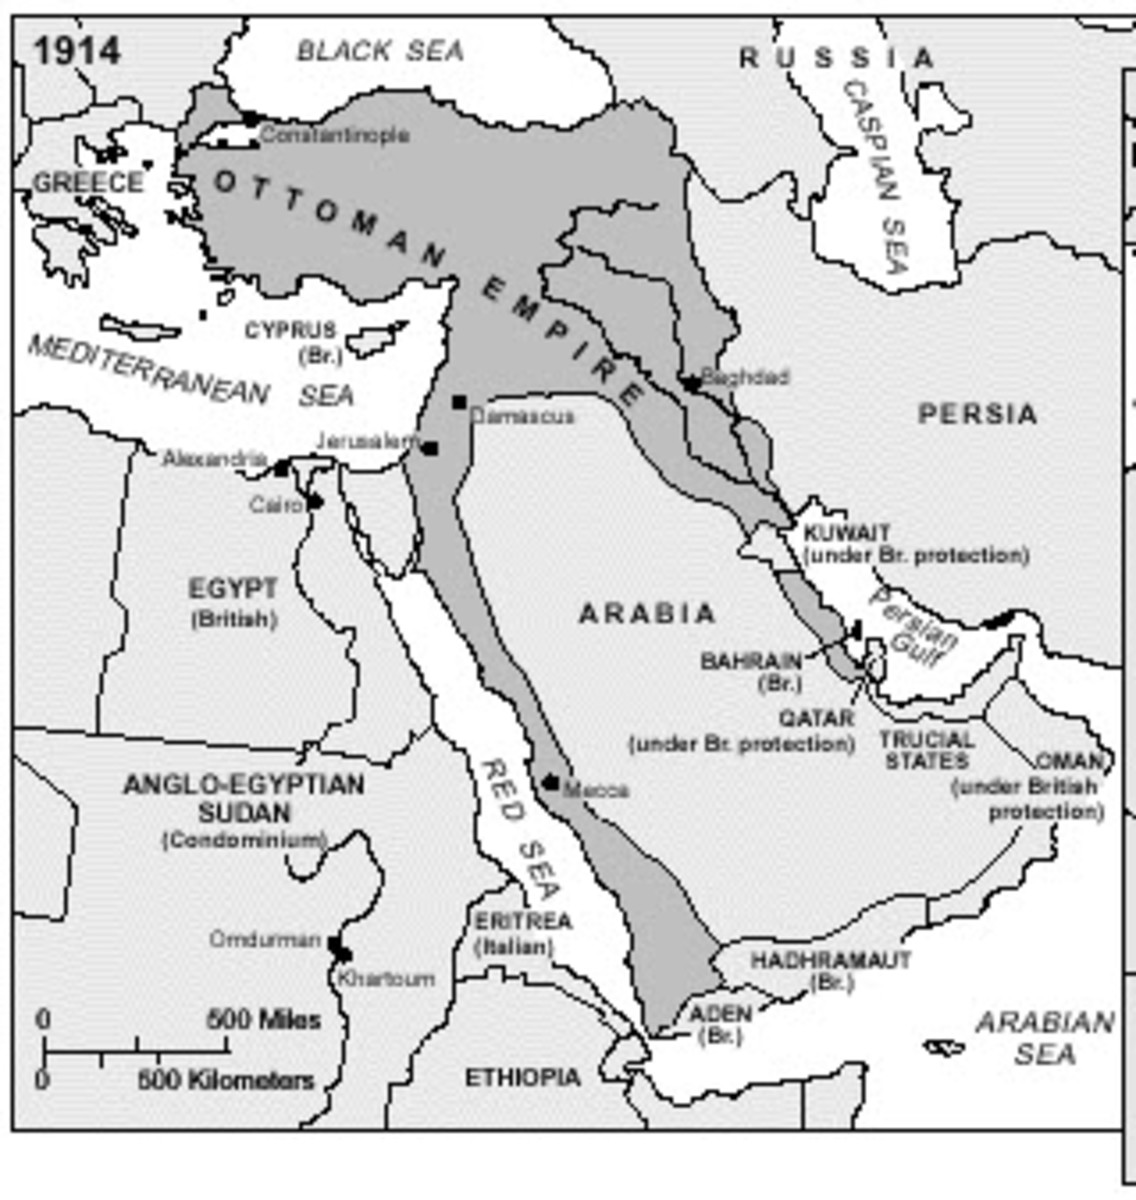 The Middle-East Before WWI